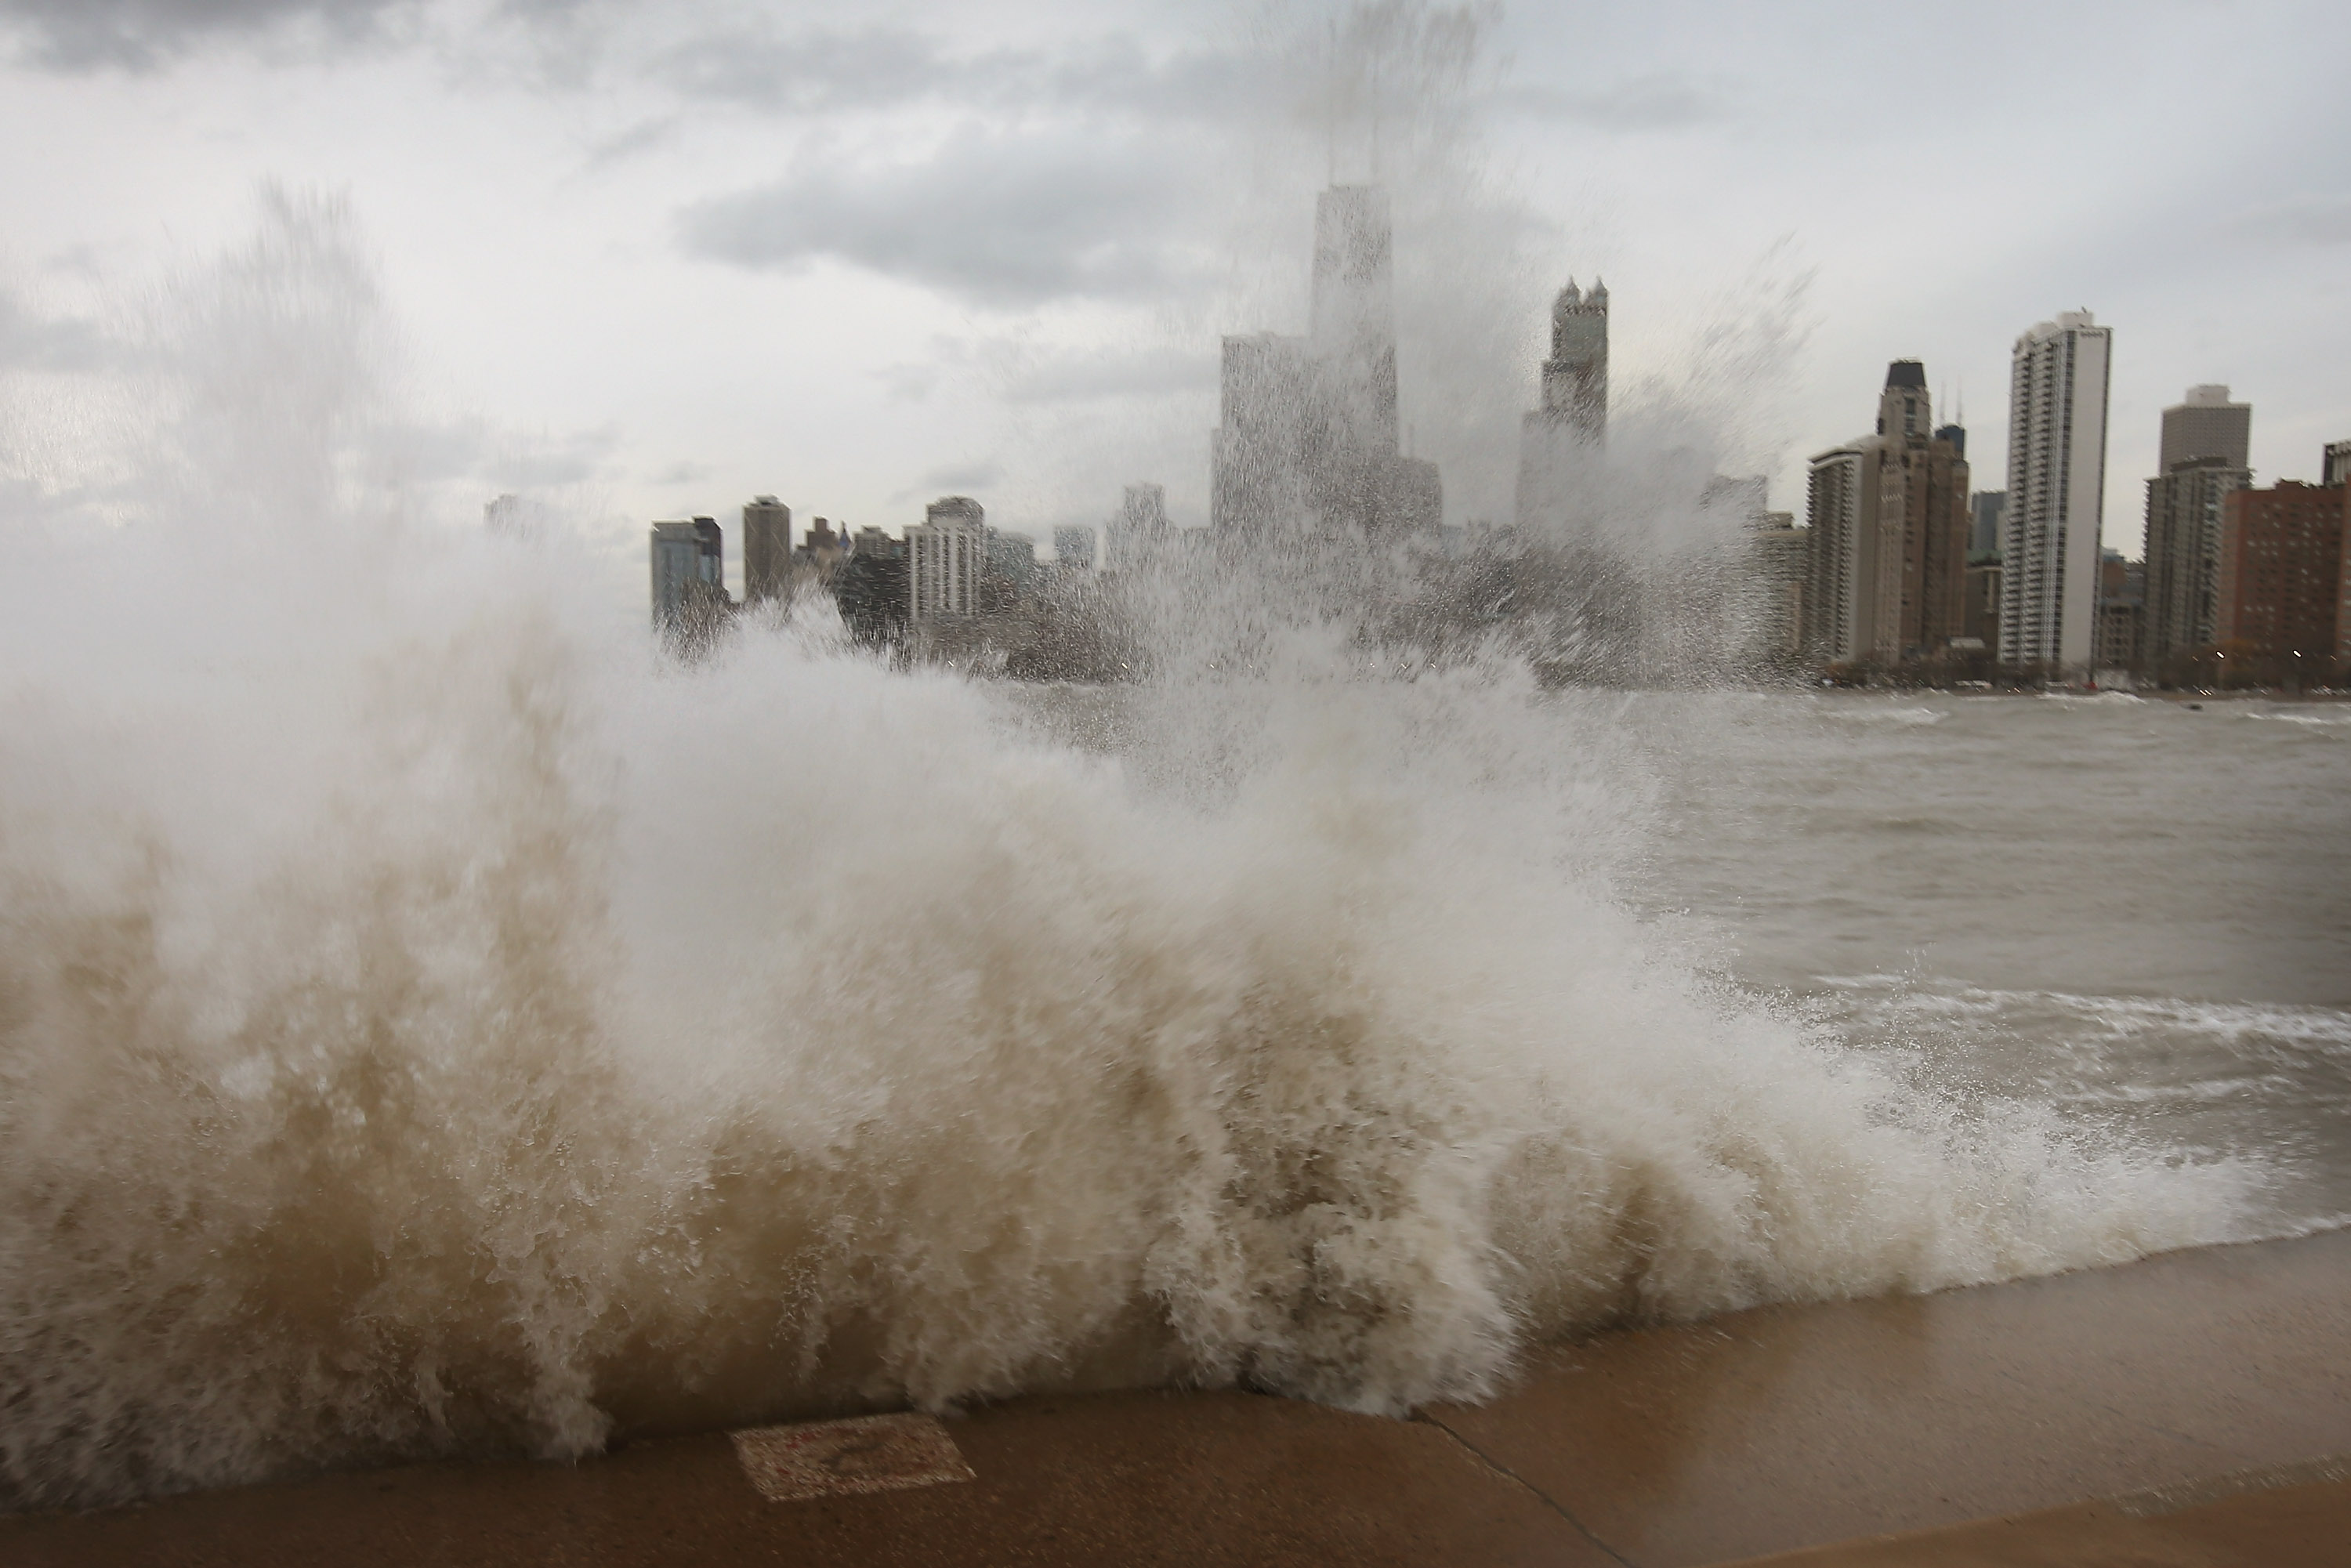 A large wave crashes along the lakefront trail. There are tall buildings in the distance.